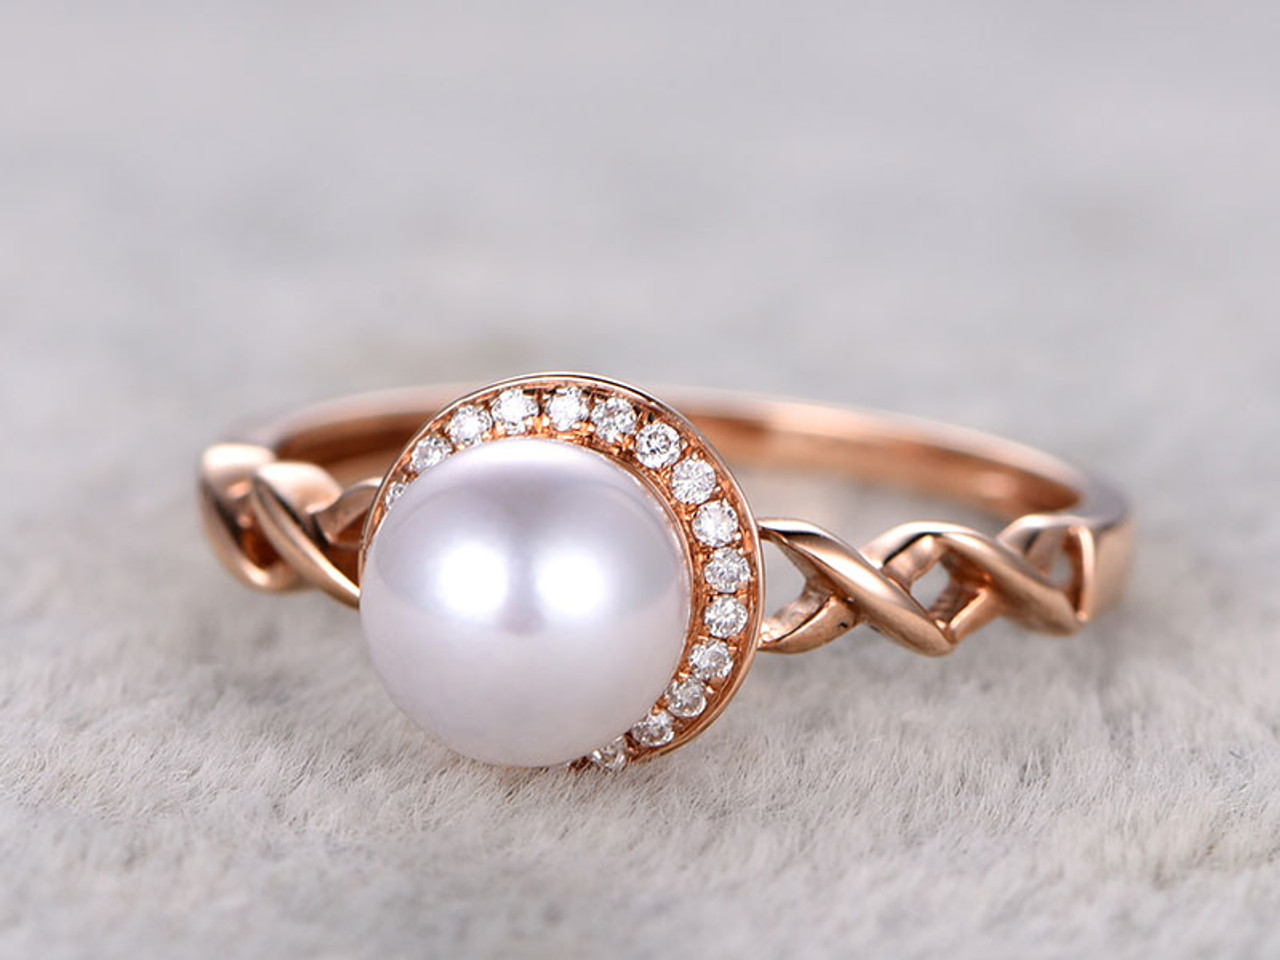 products heavenly engagement and vintage pearl edwardian antique fetheray pearls diamond ring